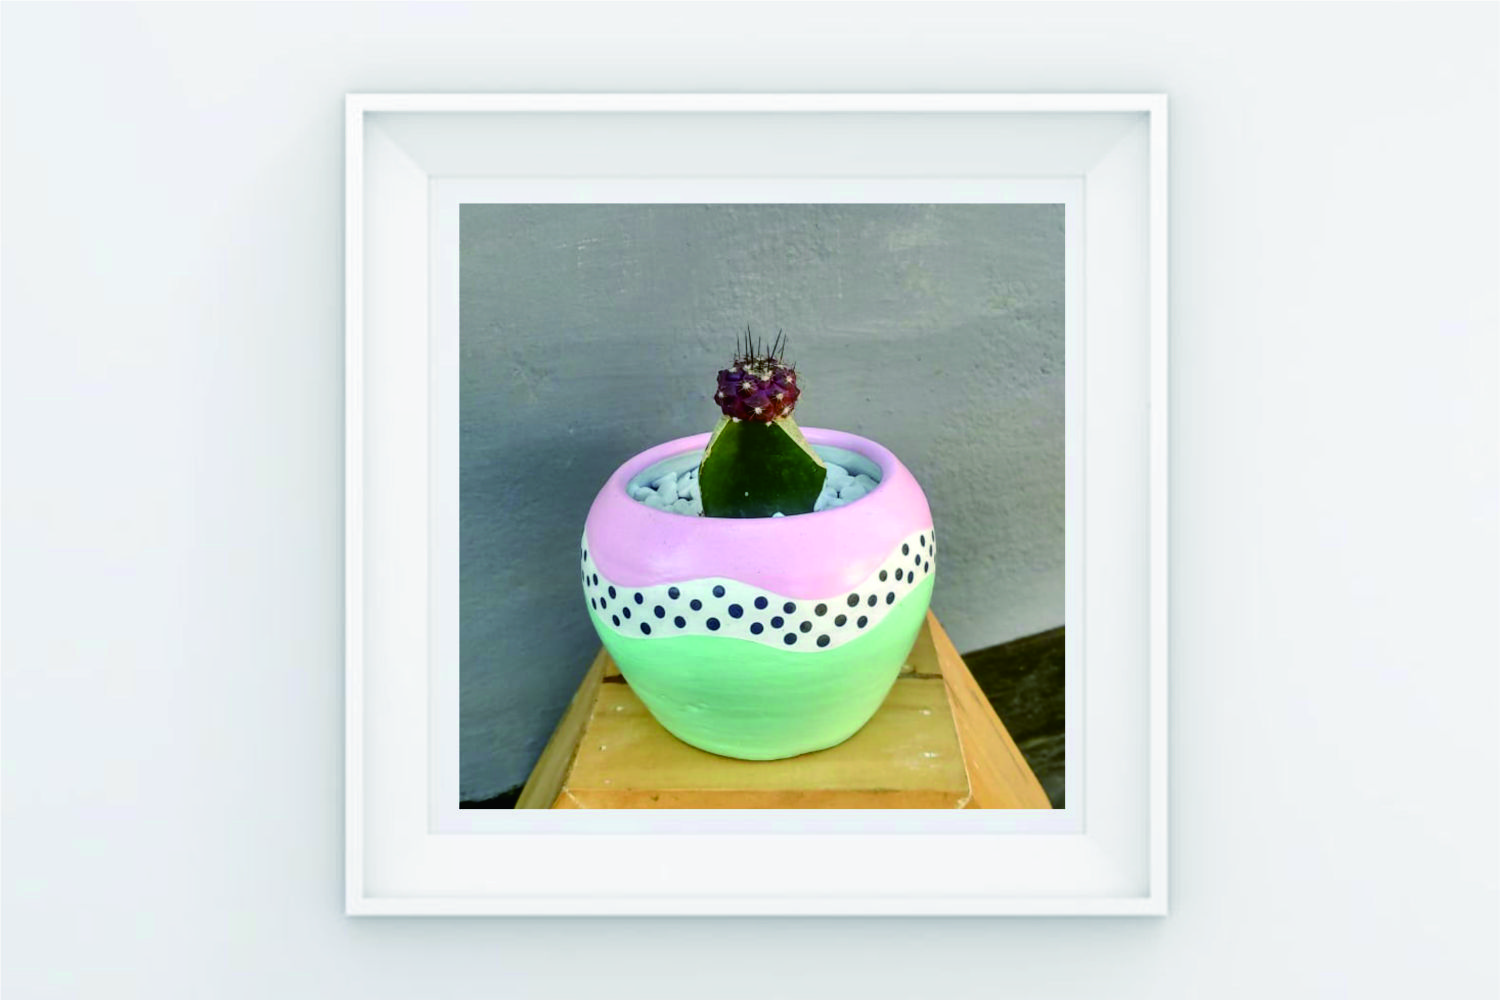 FRAME POSTER A ROUND CASTUS ROUND HAND example image 1